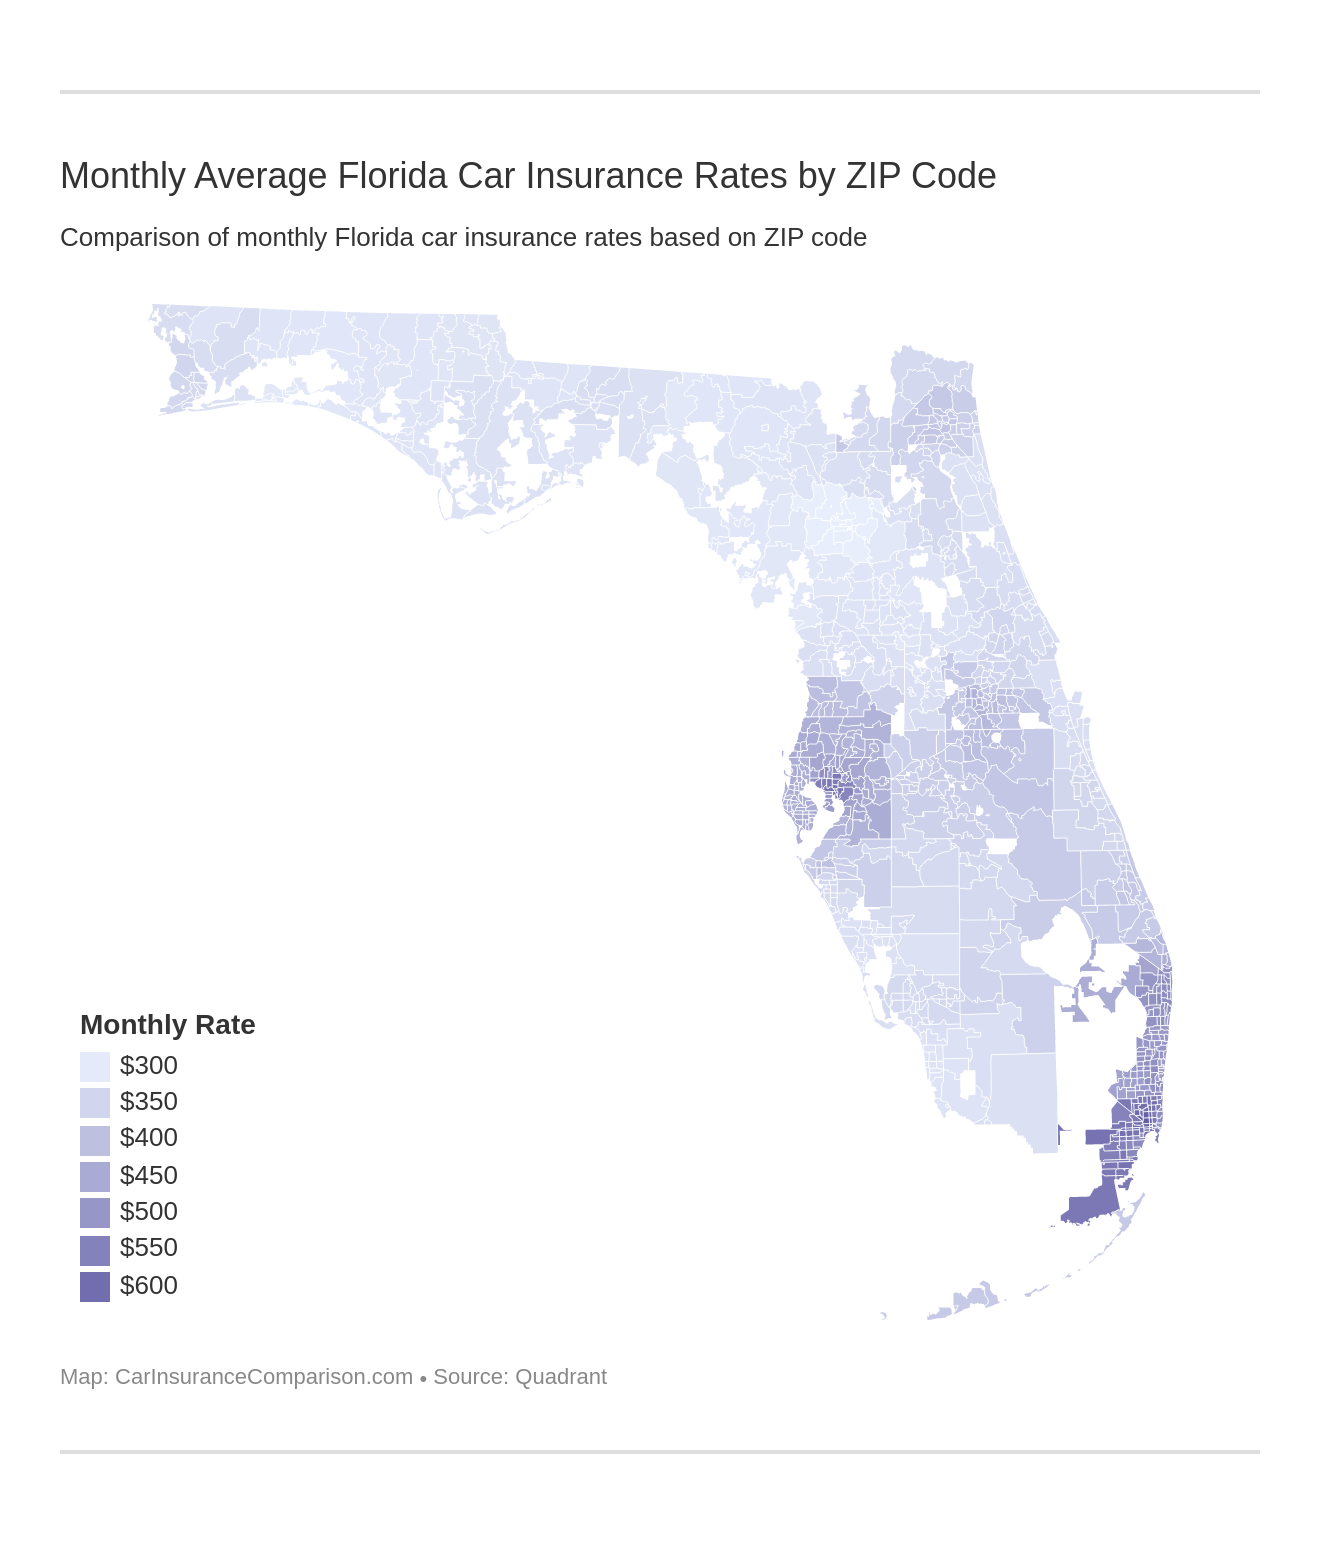 Monthly Average Florida Car Insurance Rates by ZIP Code